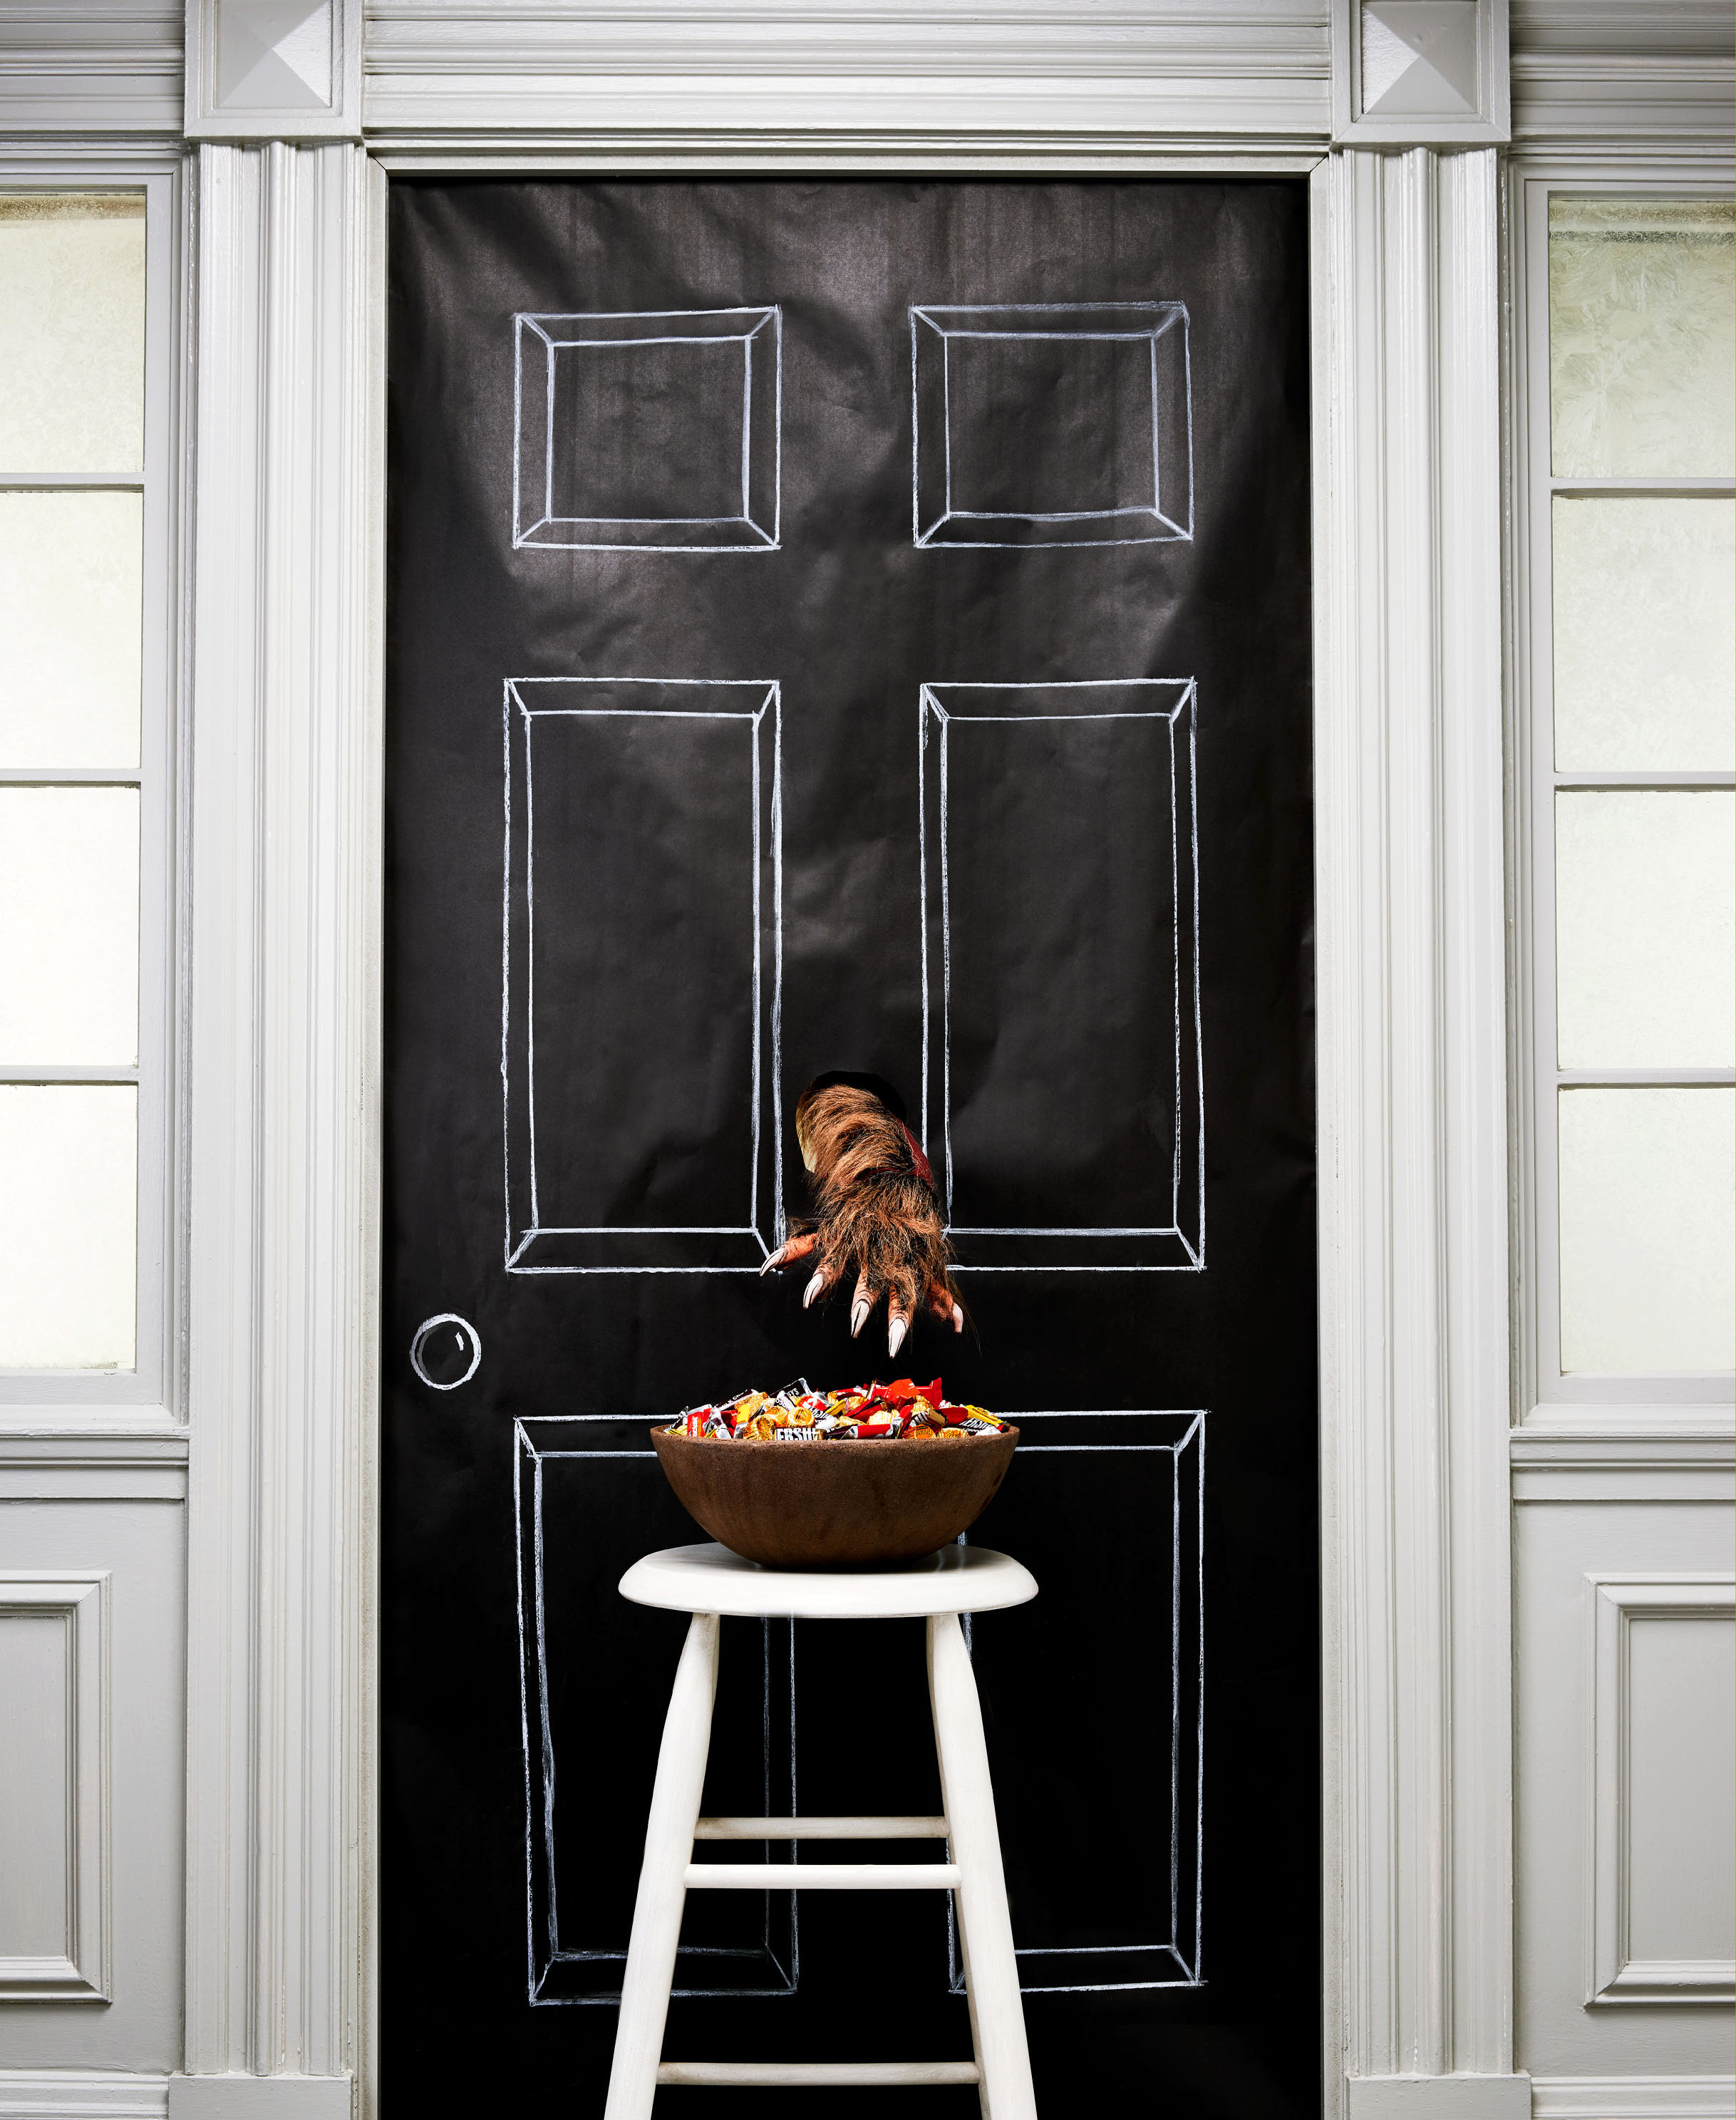 12 Clever Ways to Display Your Halloween Candy for Trick-or-Treaters